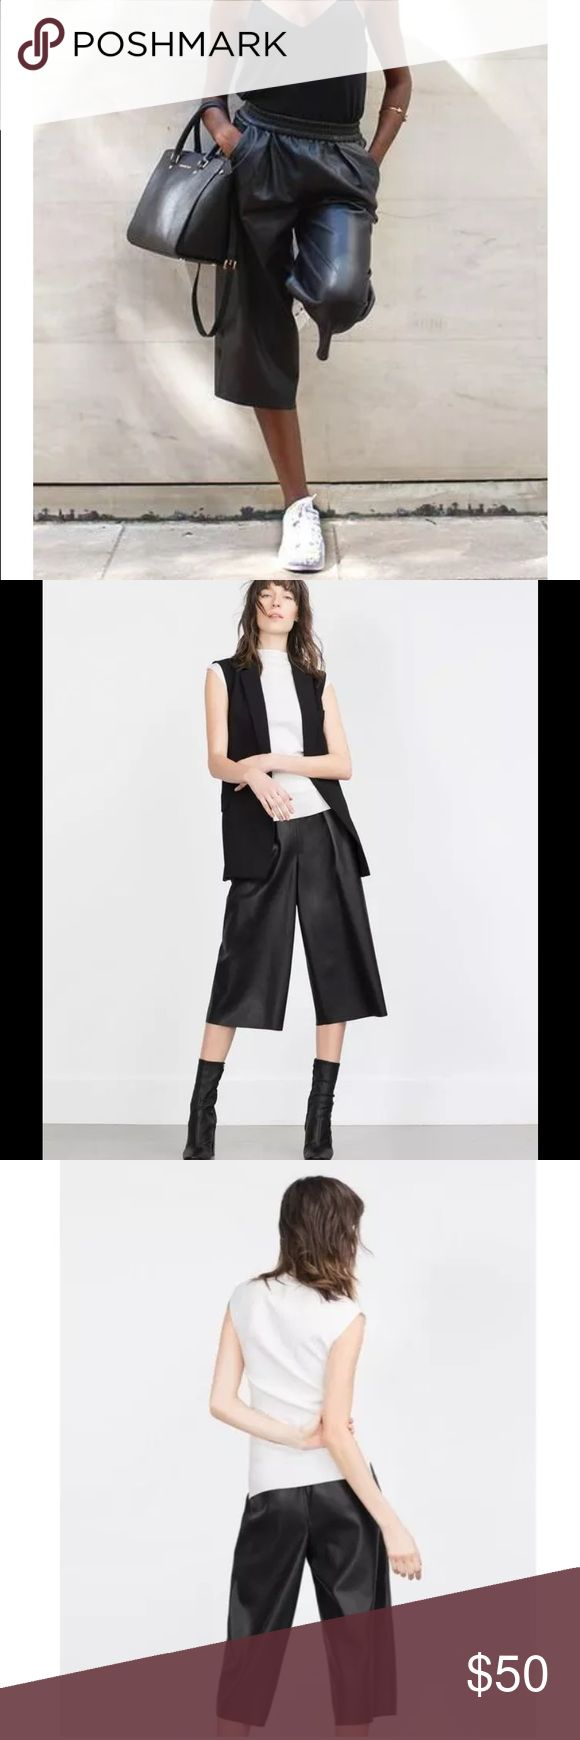 "ZARA Black Faux Leather Pants Culottes Crops NWOT ZARA BASIC Black Faux Leather Pants Culottes Gaucho Cropped Wide Leg Sz L  Description: Tag Size: L Inseam: 18"" Leg opening: 12.75"" Color/Wash: Black Faux Leather Elastic Stretch Waistband 2 Front Pockets   Condition: New Without Tags Zara Pants Capris"